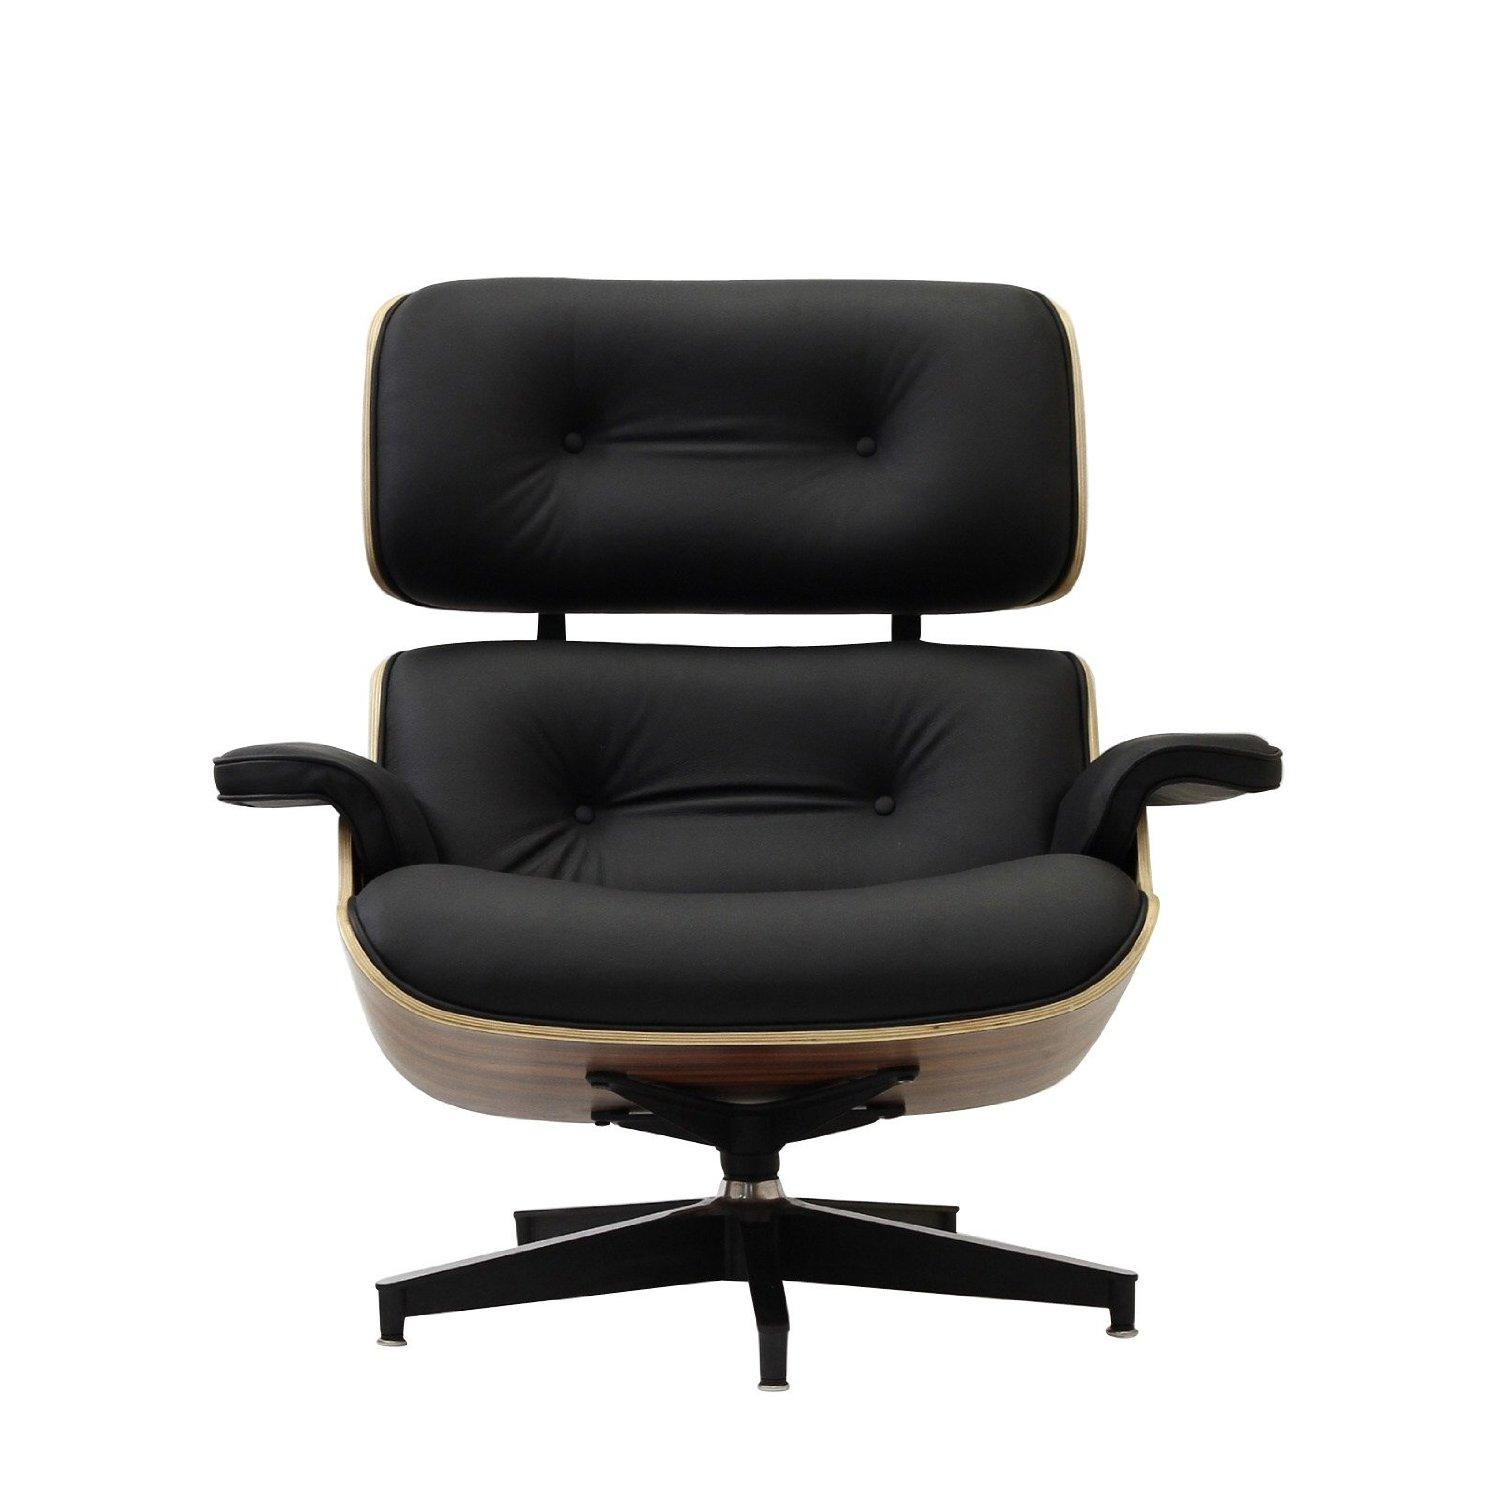 Eaze lounge chair in black leather and for Amazon chaise longue